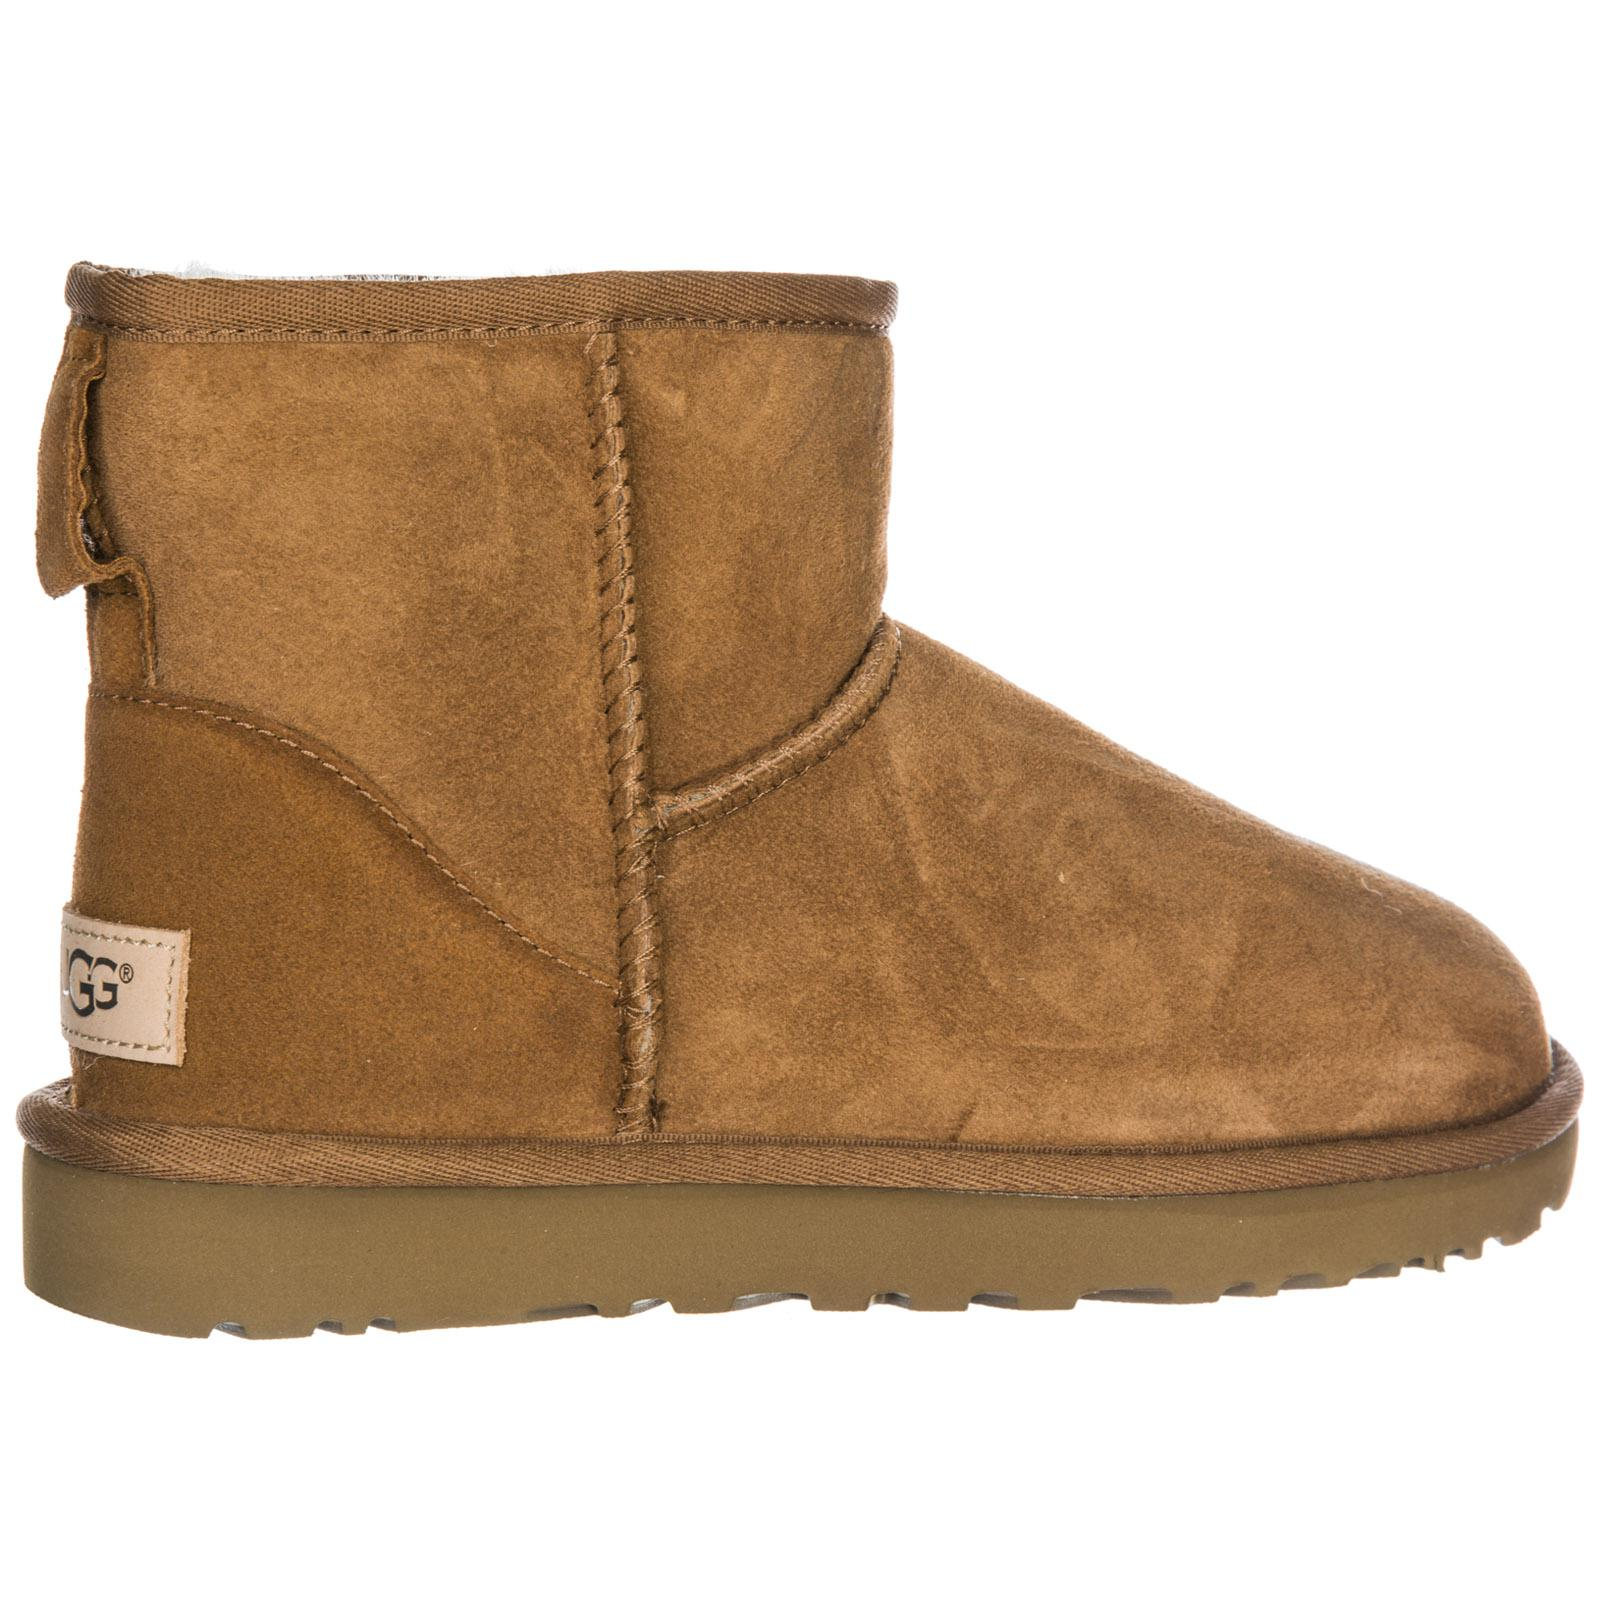 3ab762cf96d Lyst - UGG Suede Boots Classic Mini Ii in Brown